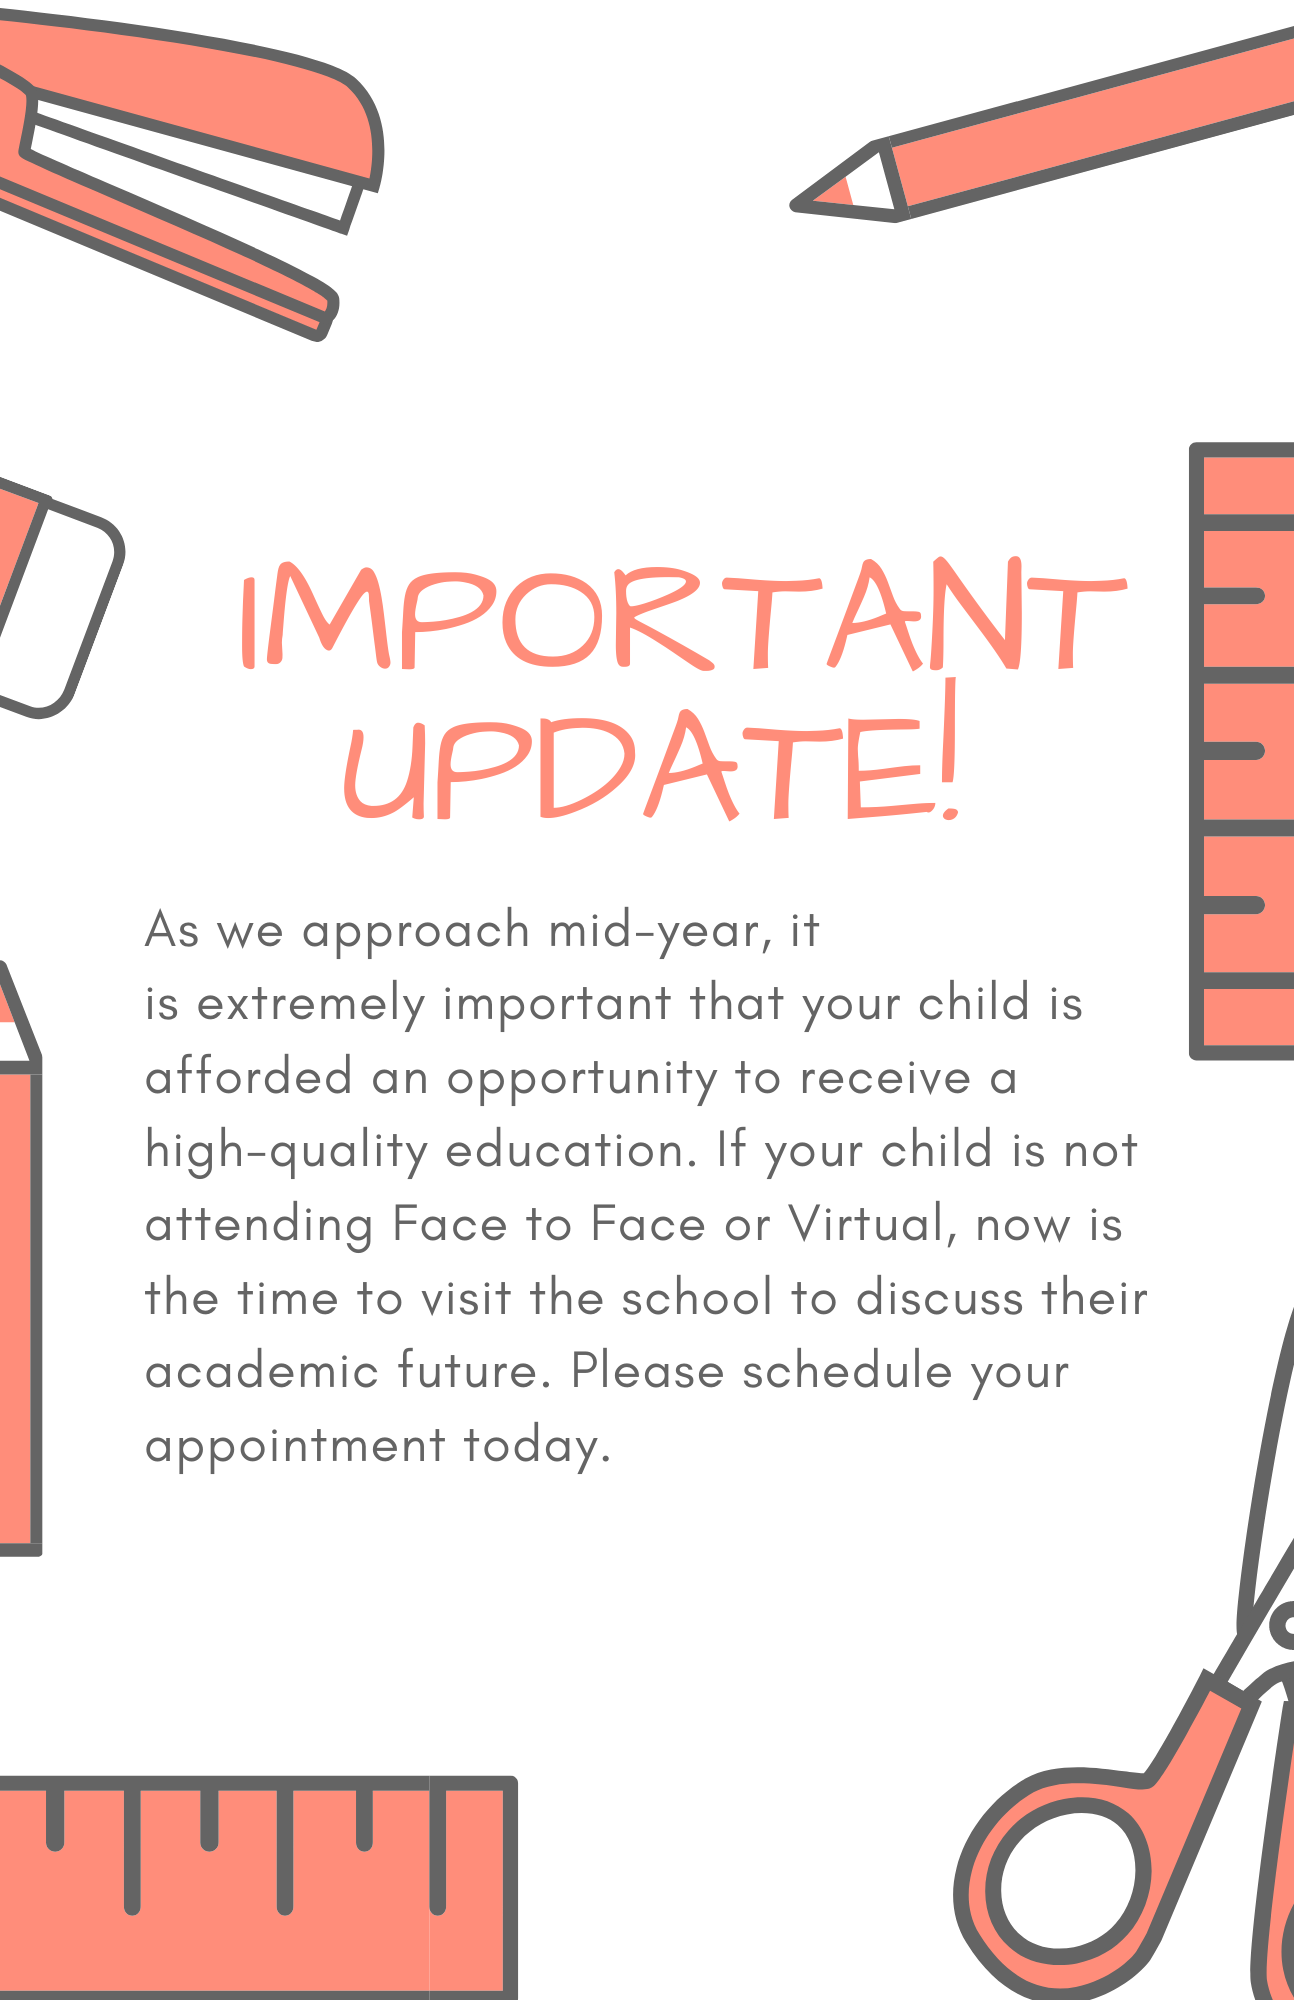 Is Your Child Enrolled?